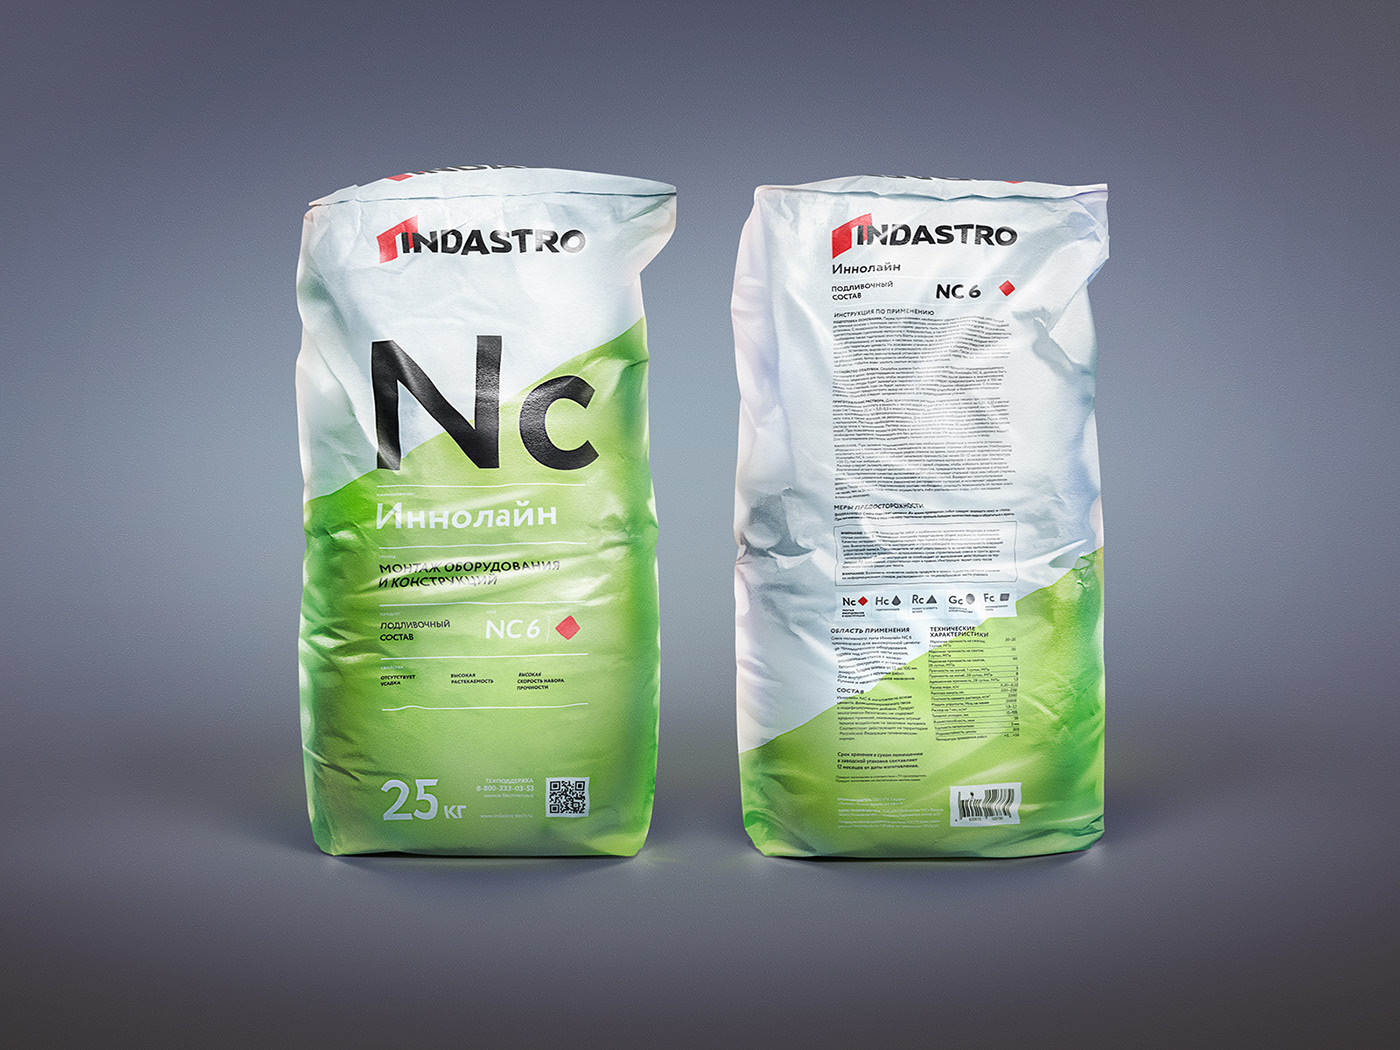 Indastro — New brand of industrial dry mix mortars on Behance